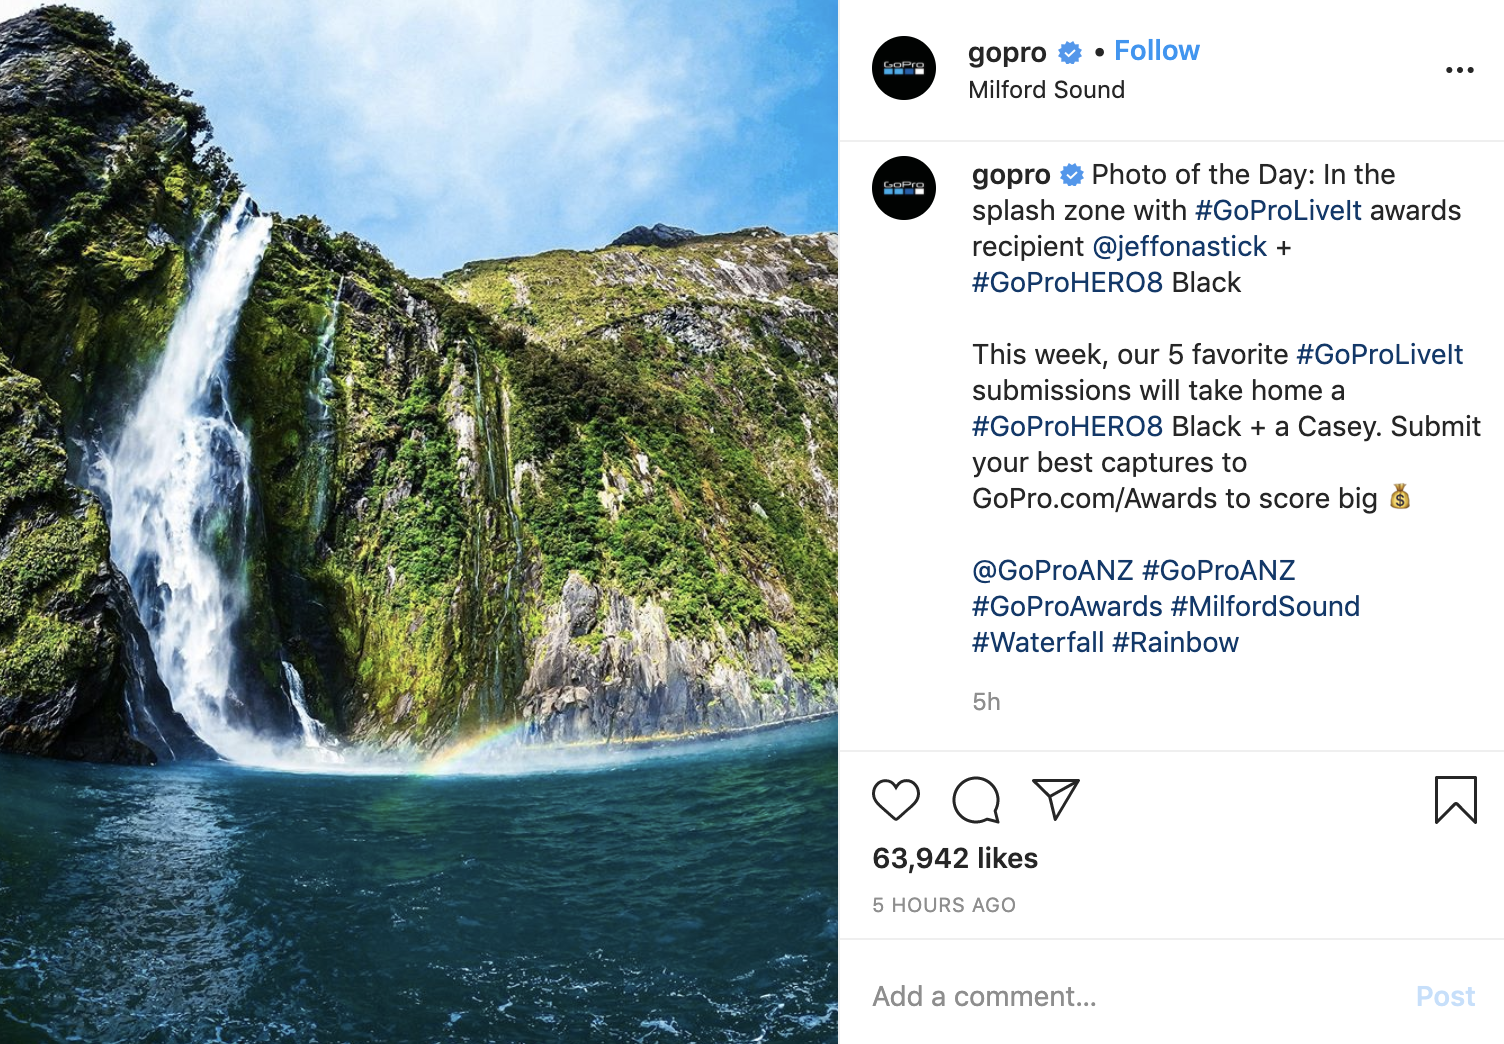 gopro instagram post